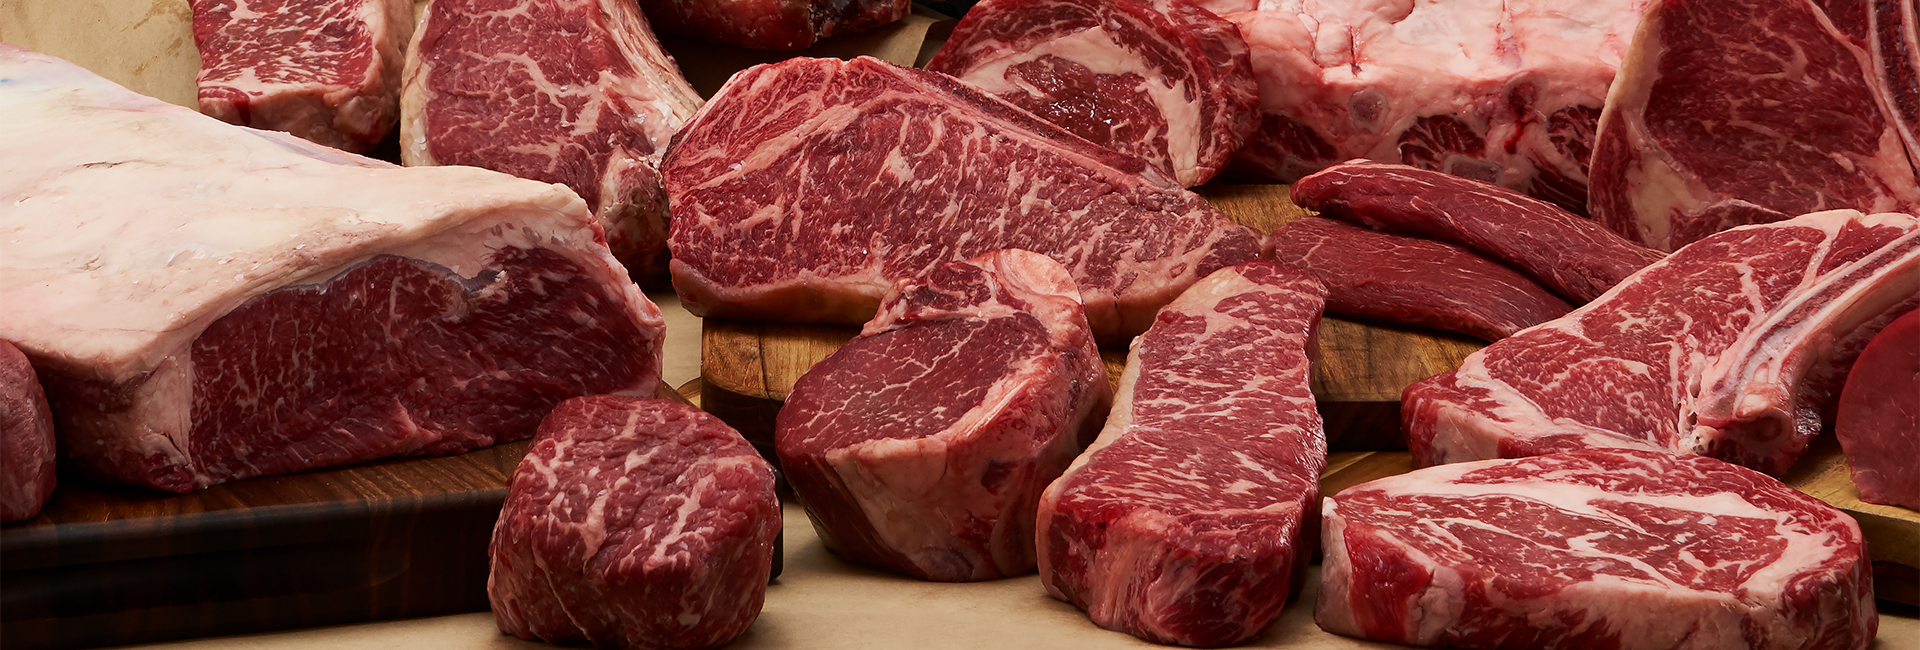 Chicago's Purveyor of Fine Meats and Prime Steaks | Meats By